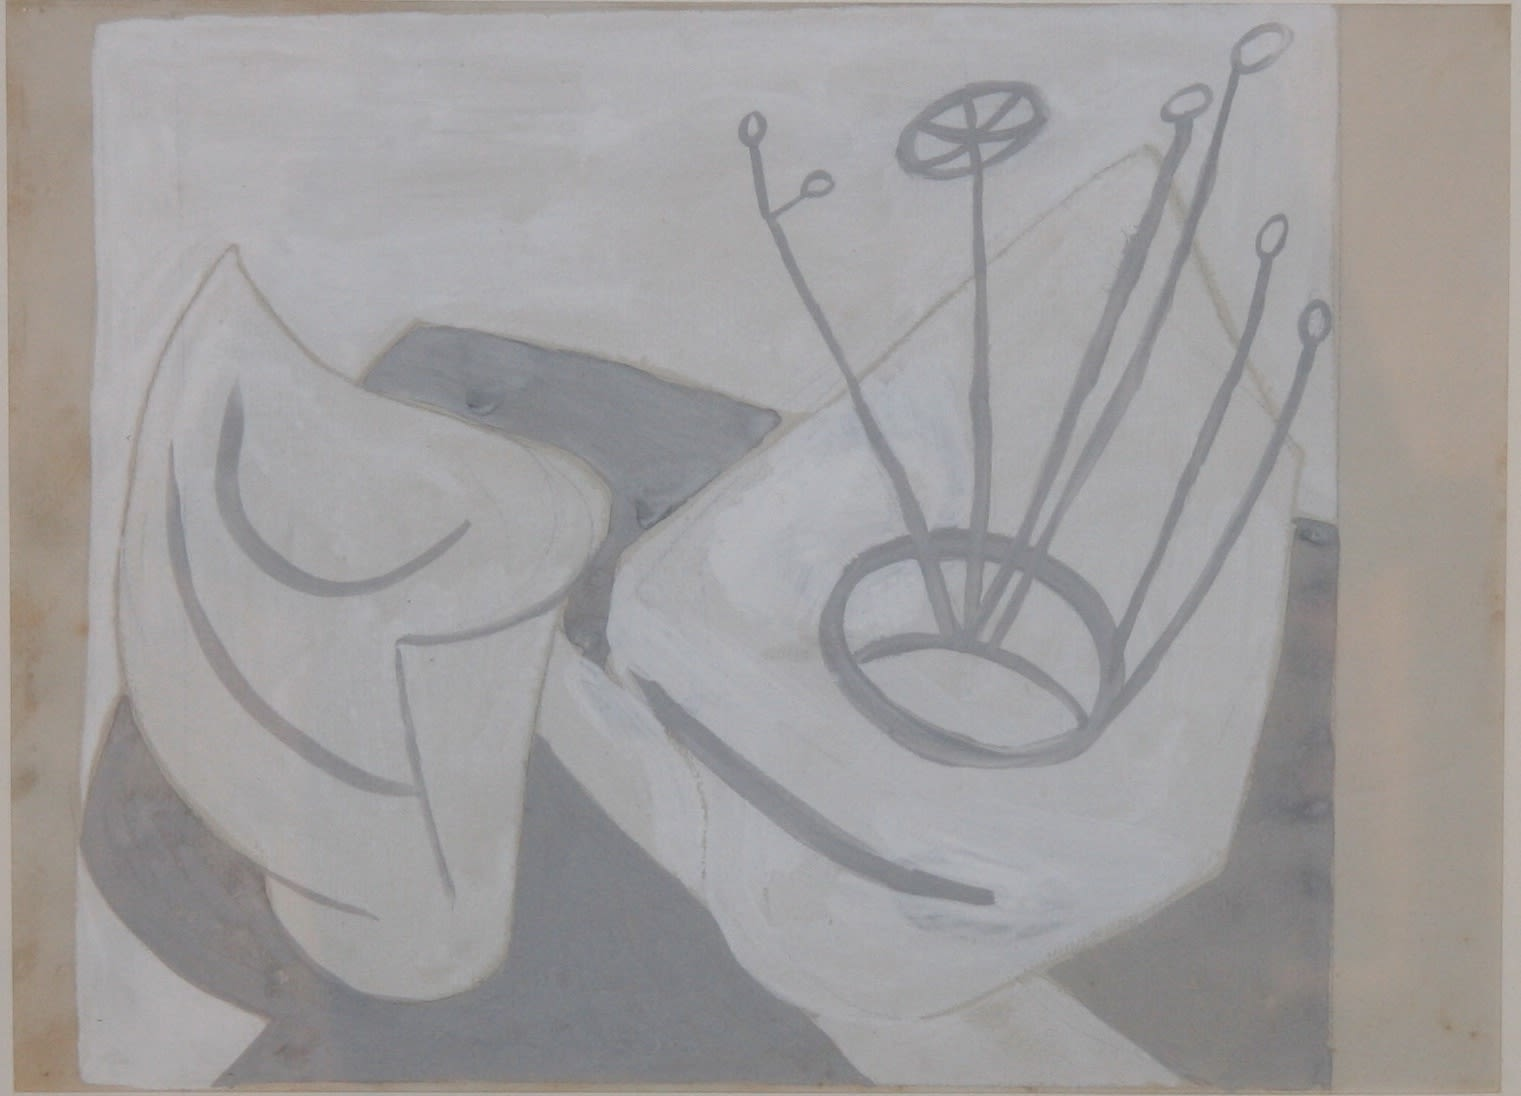 Winifred NICHOLSON (1893 – 1981) Abstract Sequence III, 1935 Gouache on paper 9 x 12 inches / 22.8 x 30.5 cm